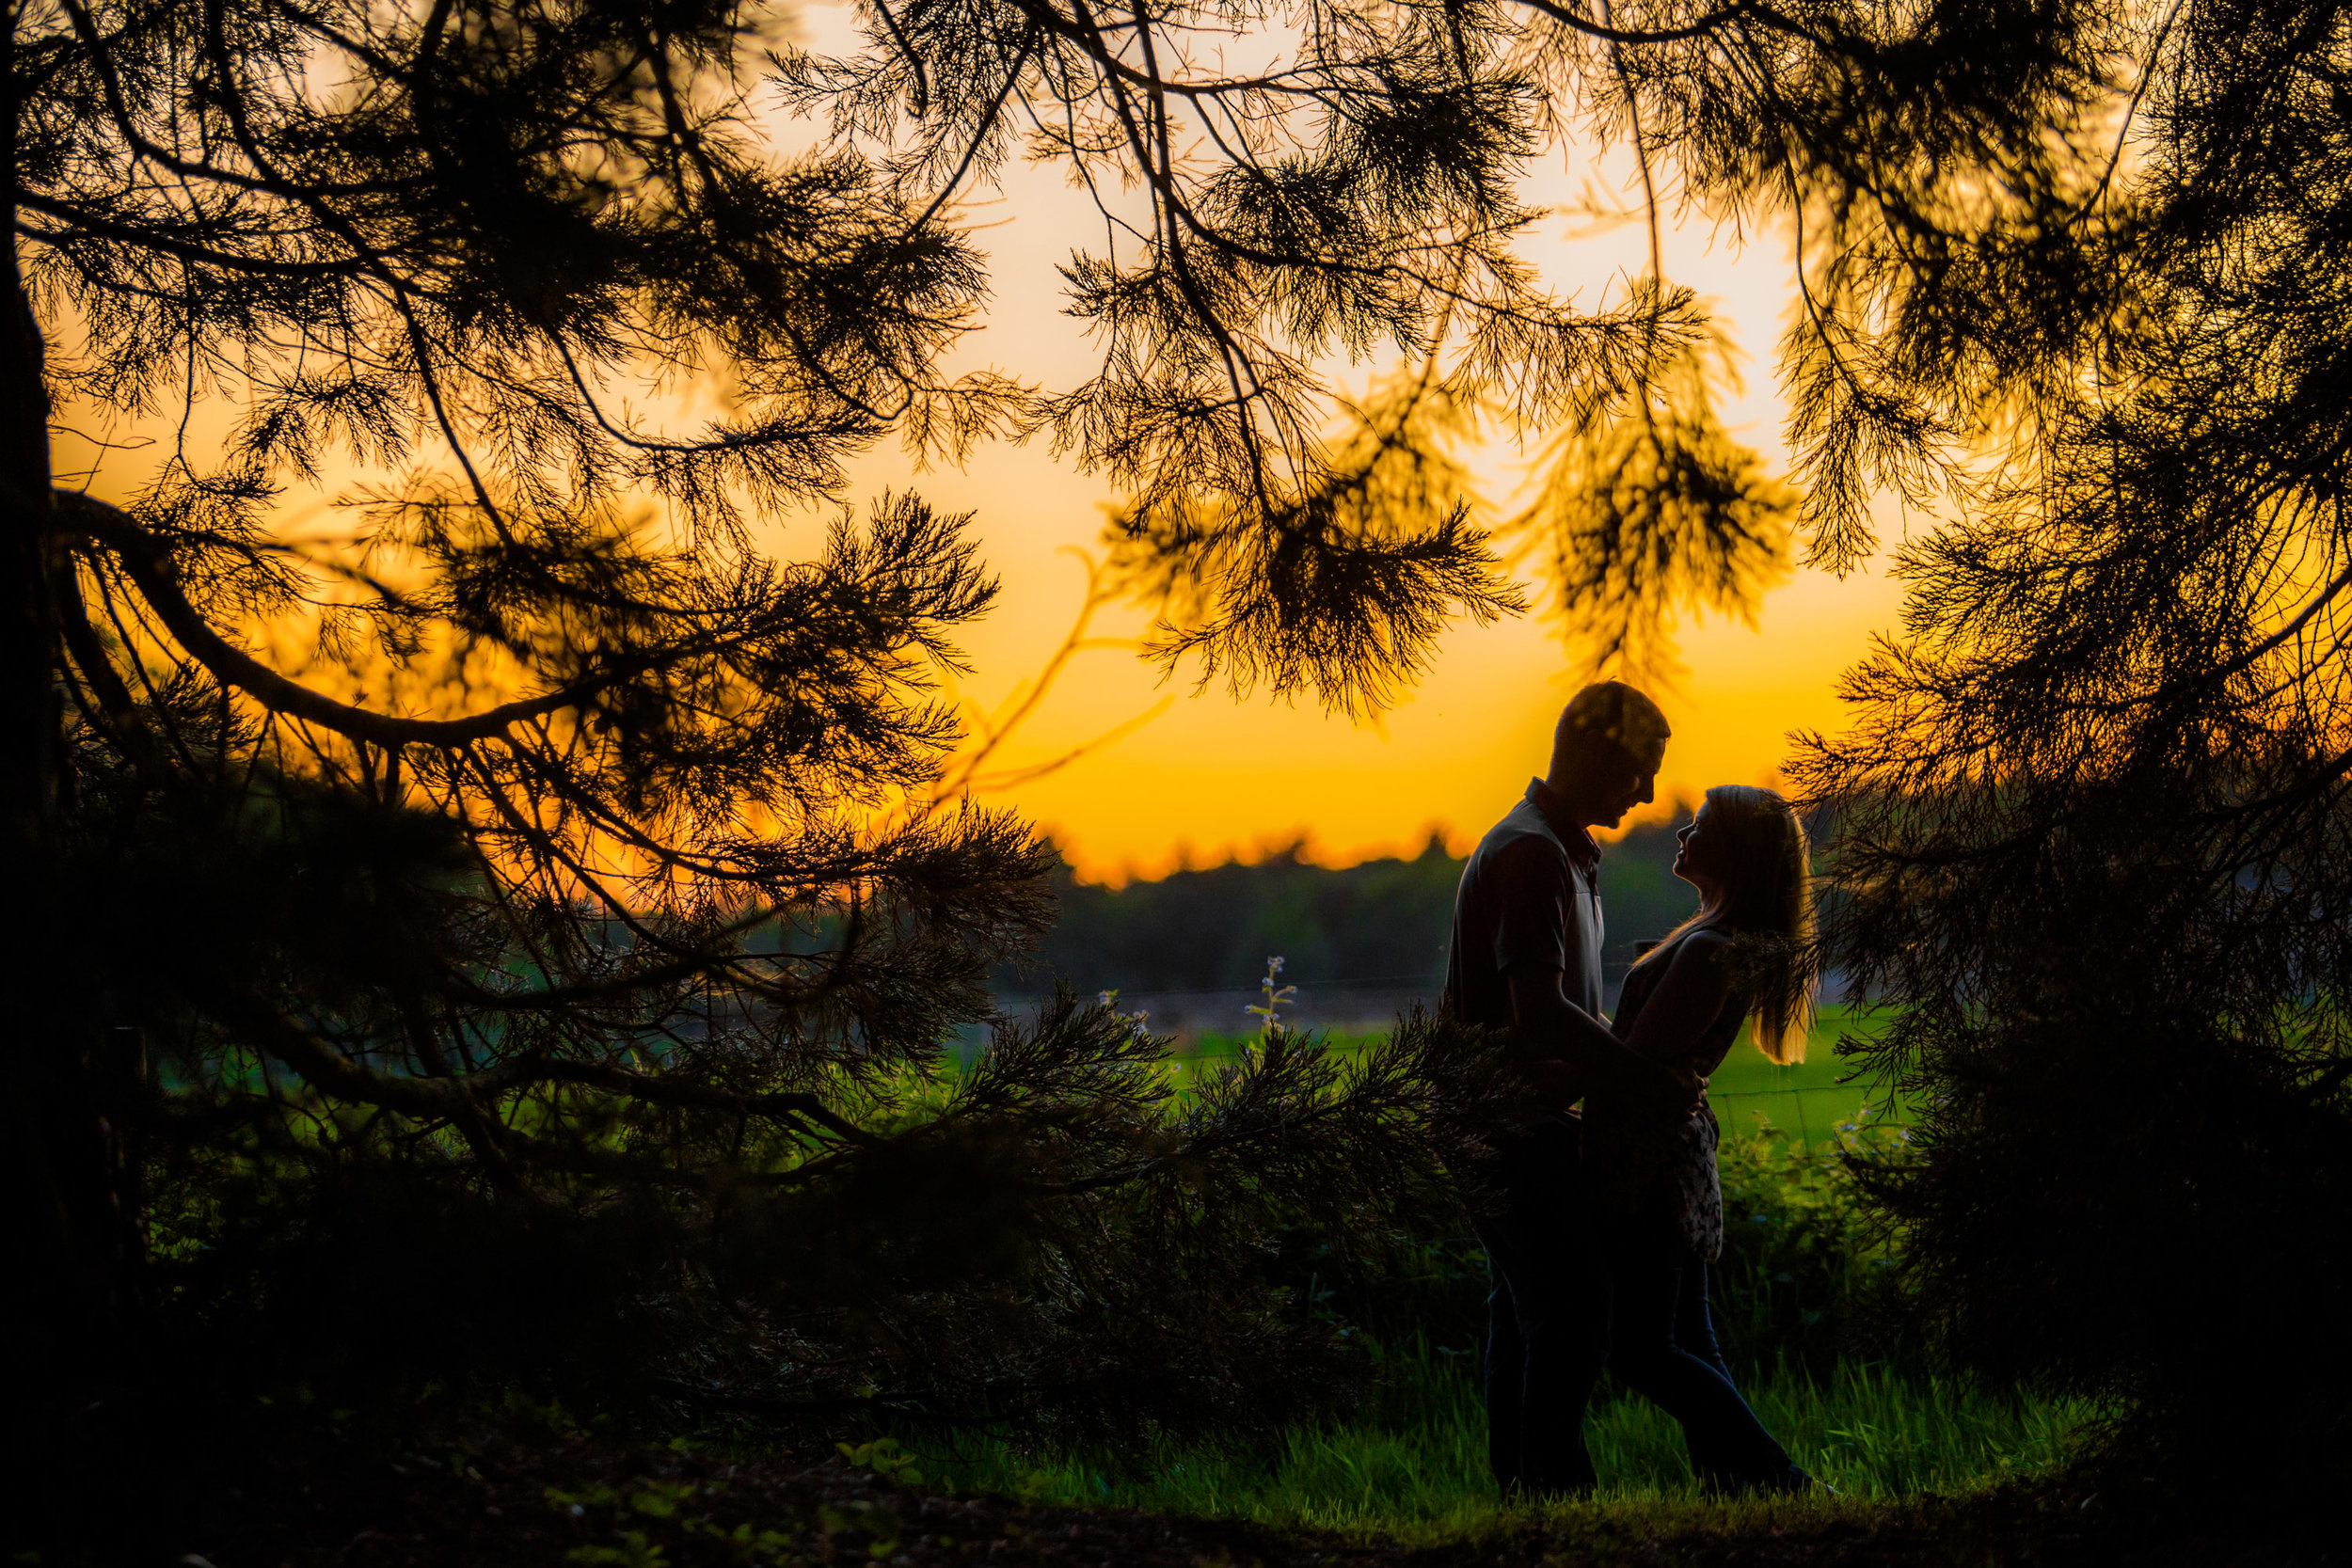 Adam & Michelle - This lovely couple had their pre-wedding shoot at their wedding venue Highfield Park where they fulfilled their dream of a shoot at sunset.